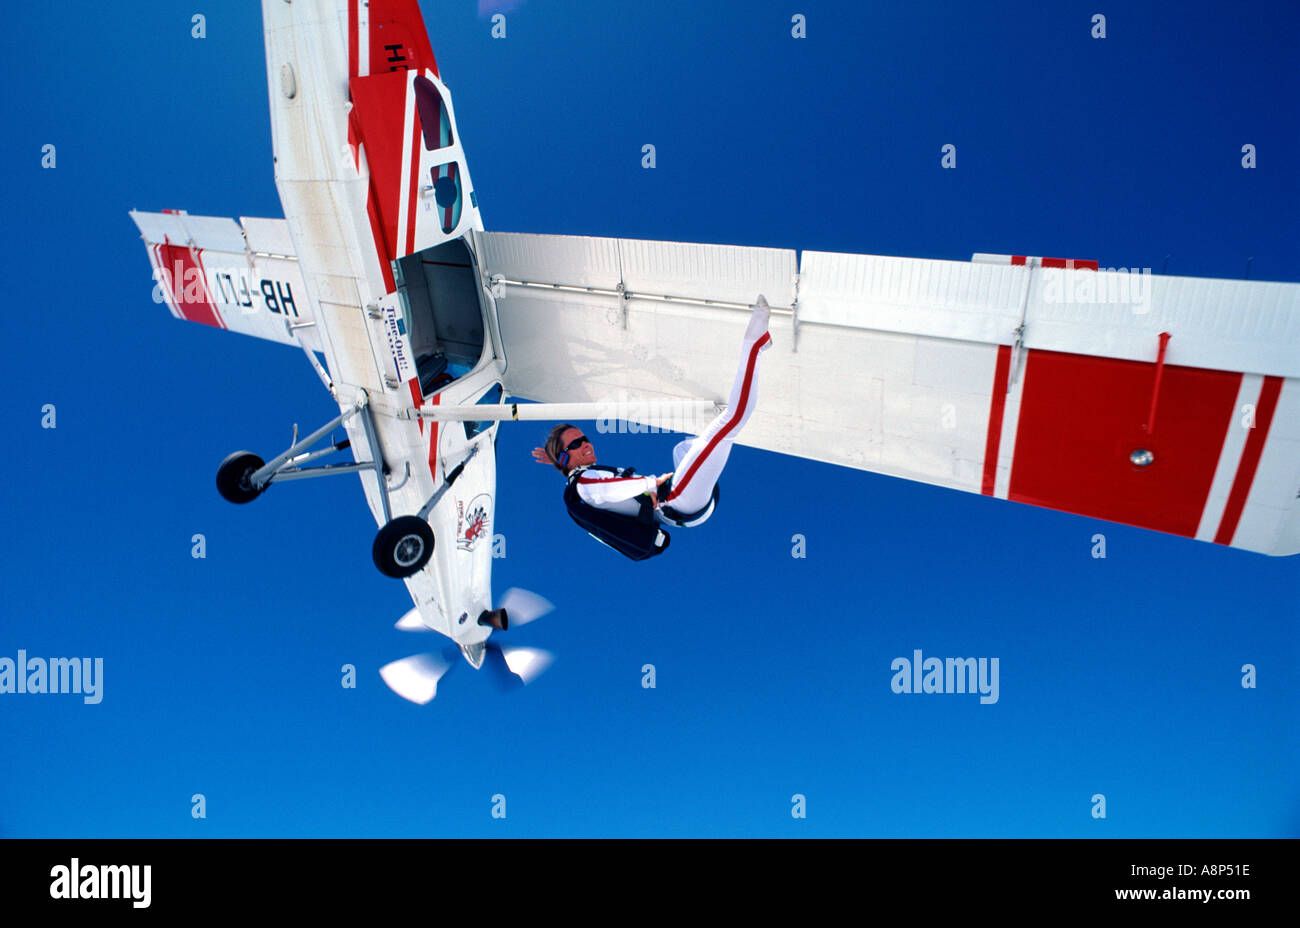 Freestyle Skydiving - Stock Image